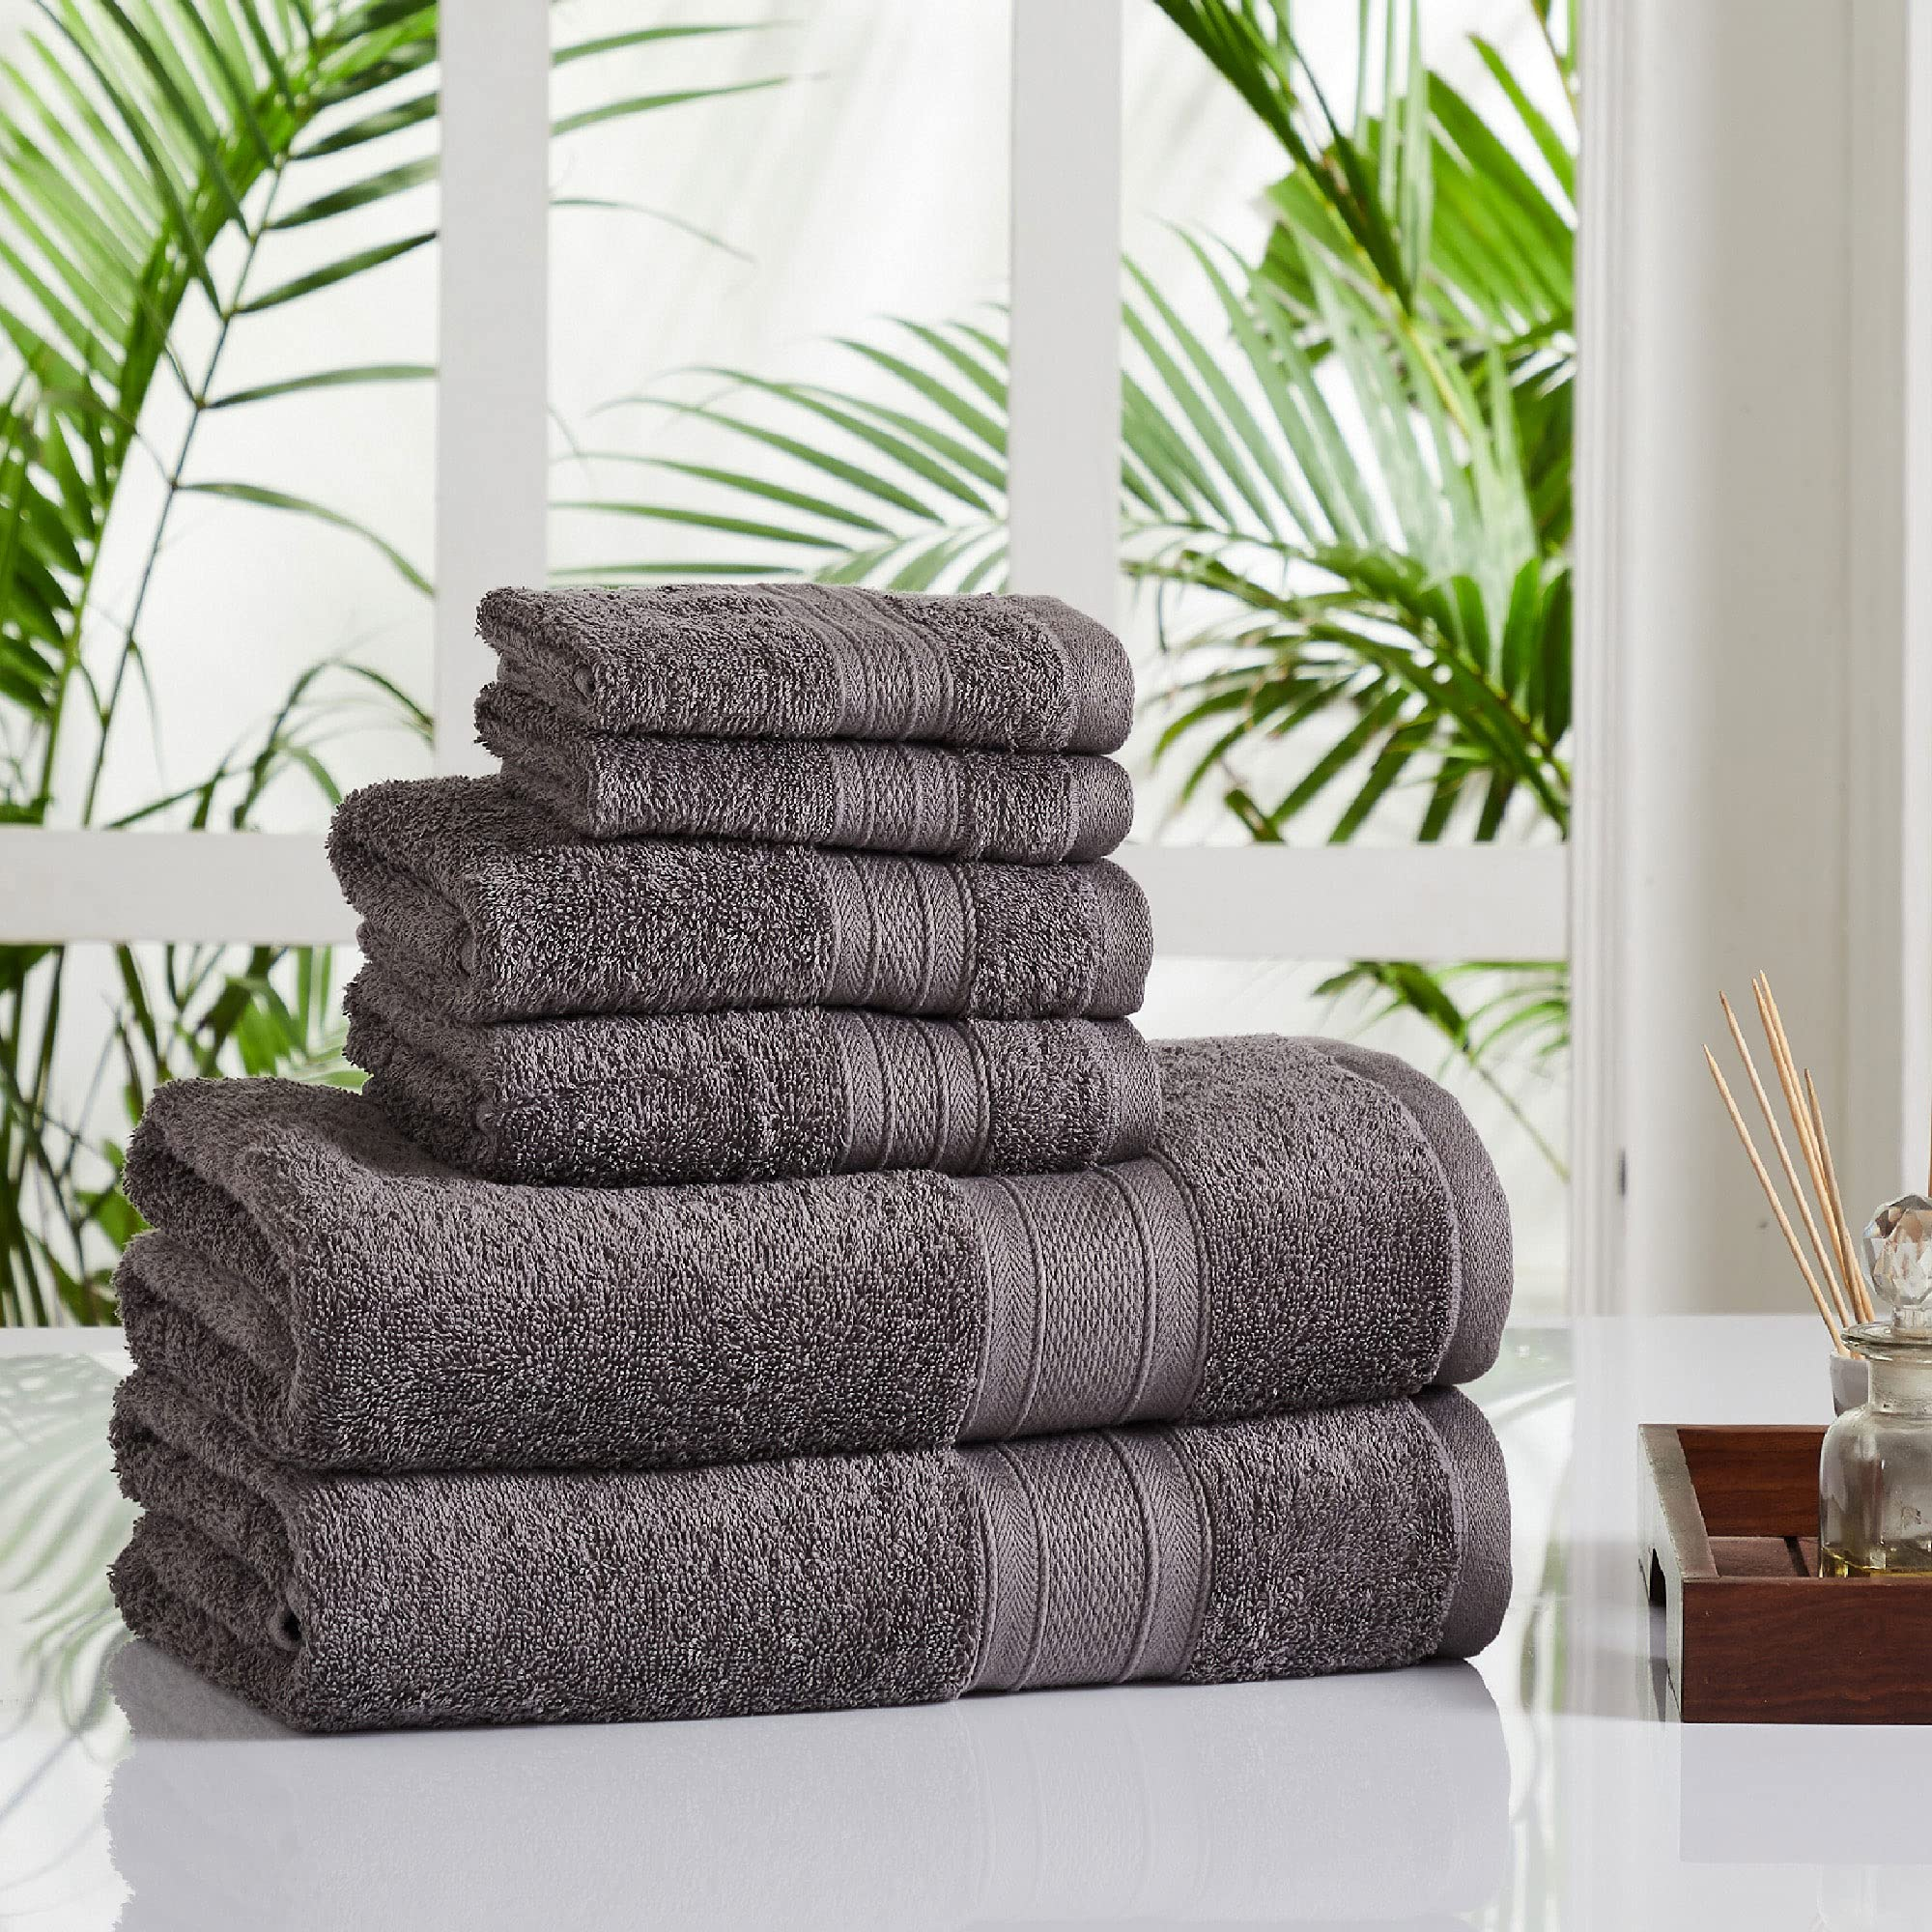 Upto 60% off on  Premium Cotton Towels & Bed Sheets by Trident